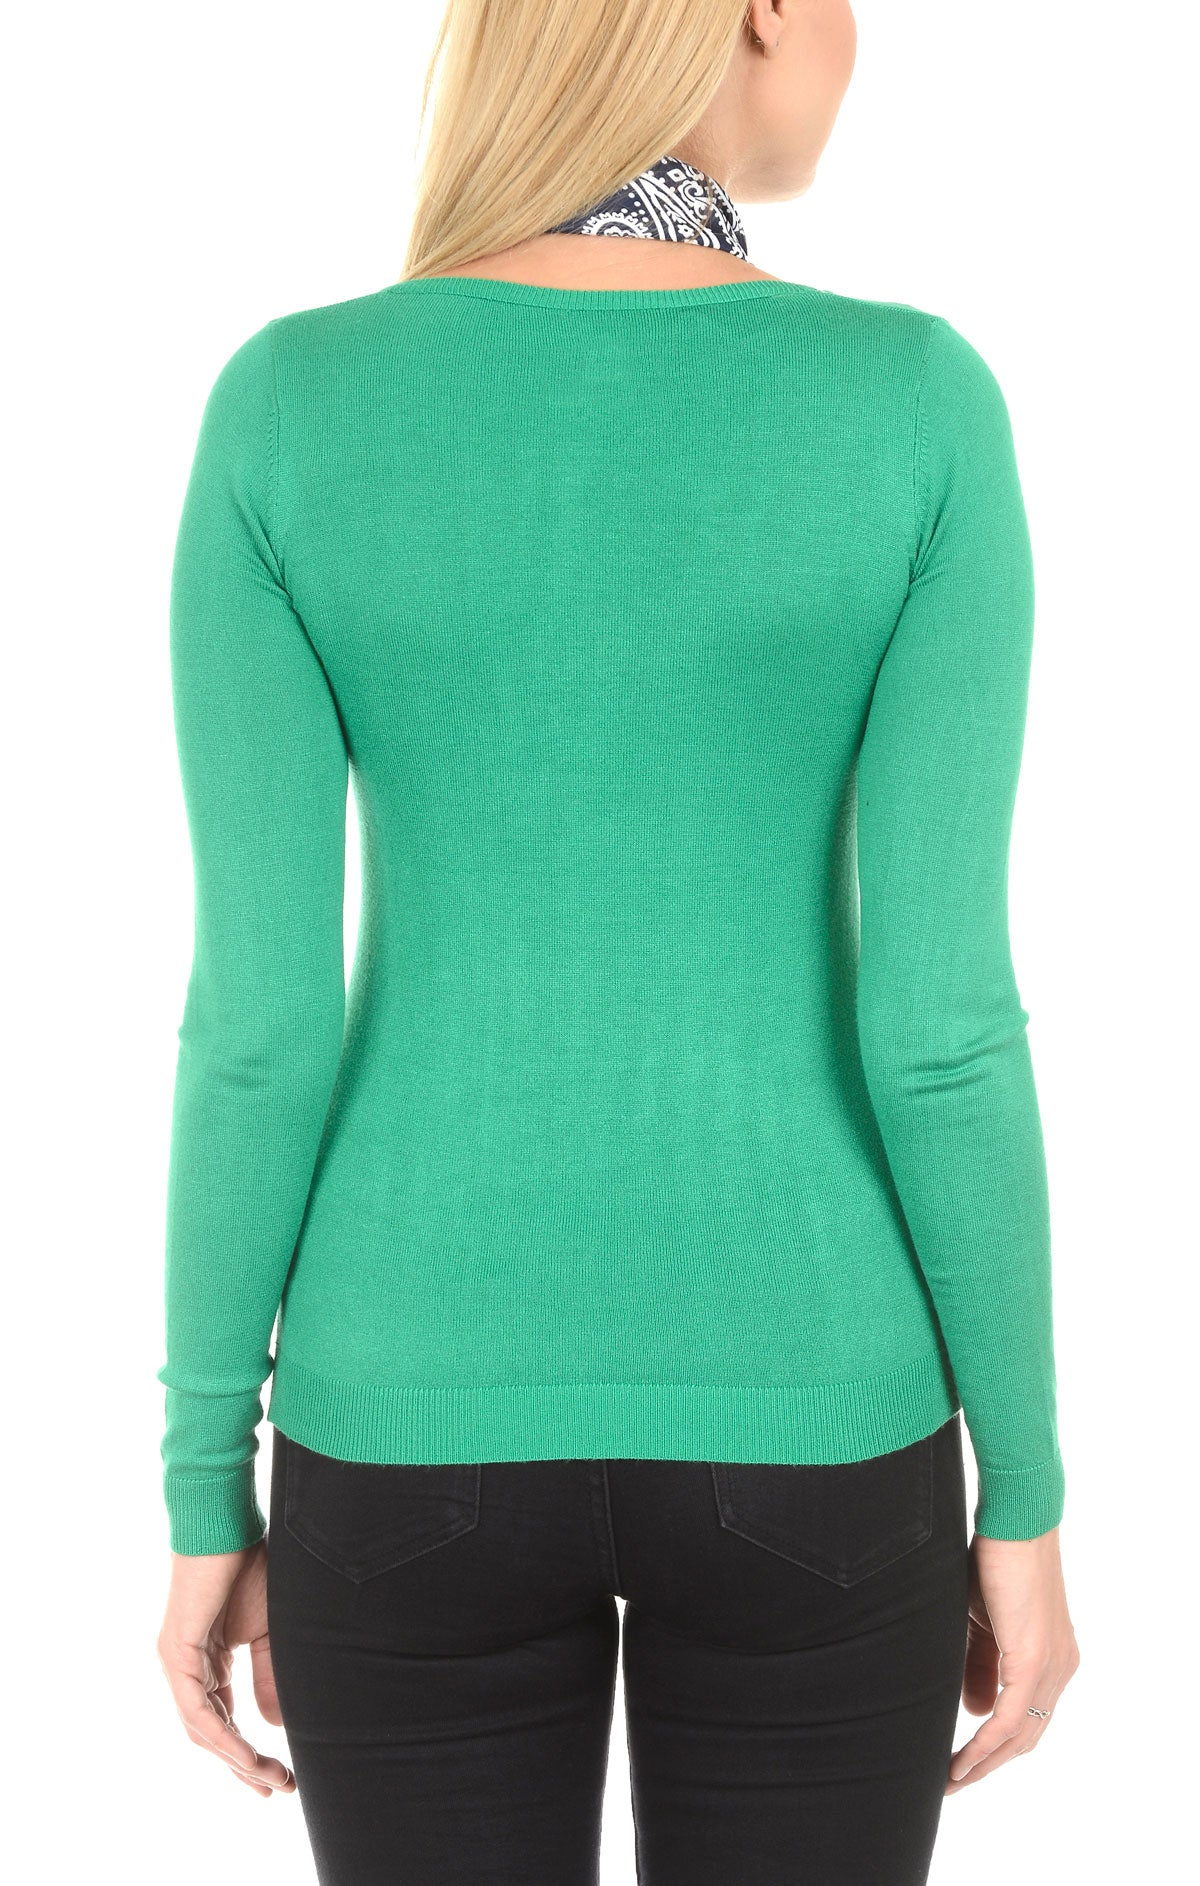 Soft V-Neck Sweater - Mint - jachs